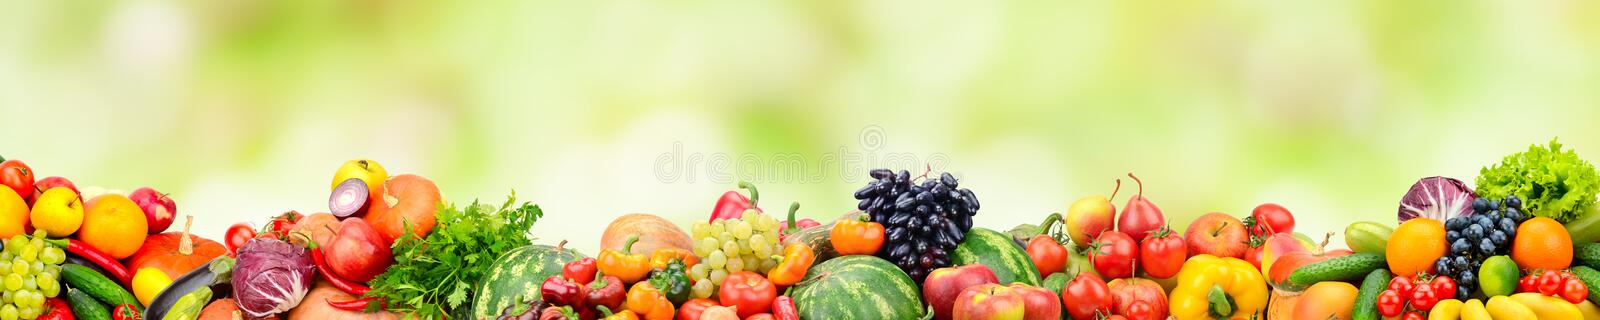 Panoramic collection fresh fruits and vegetables on green background. royalty free stock images